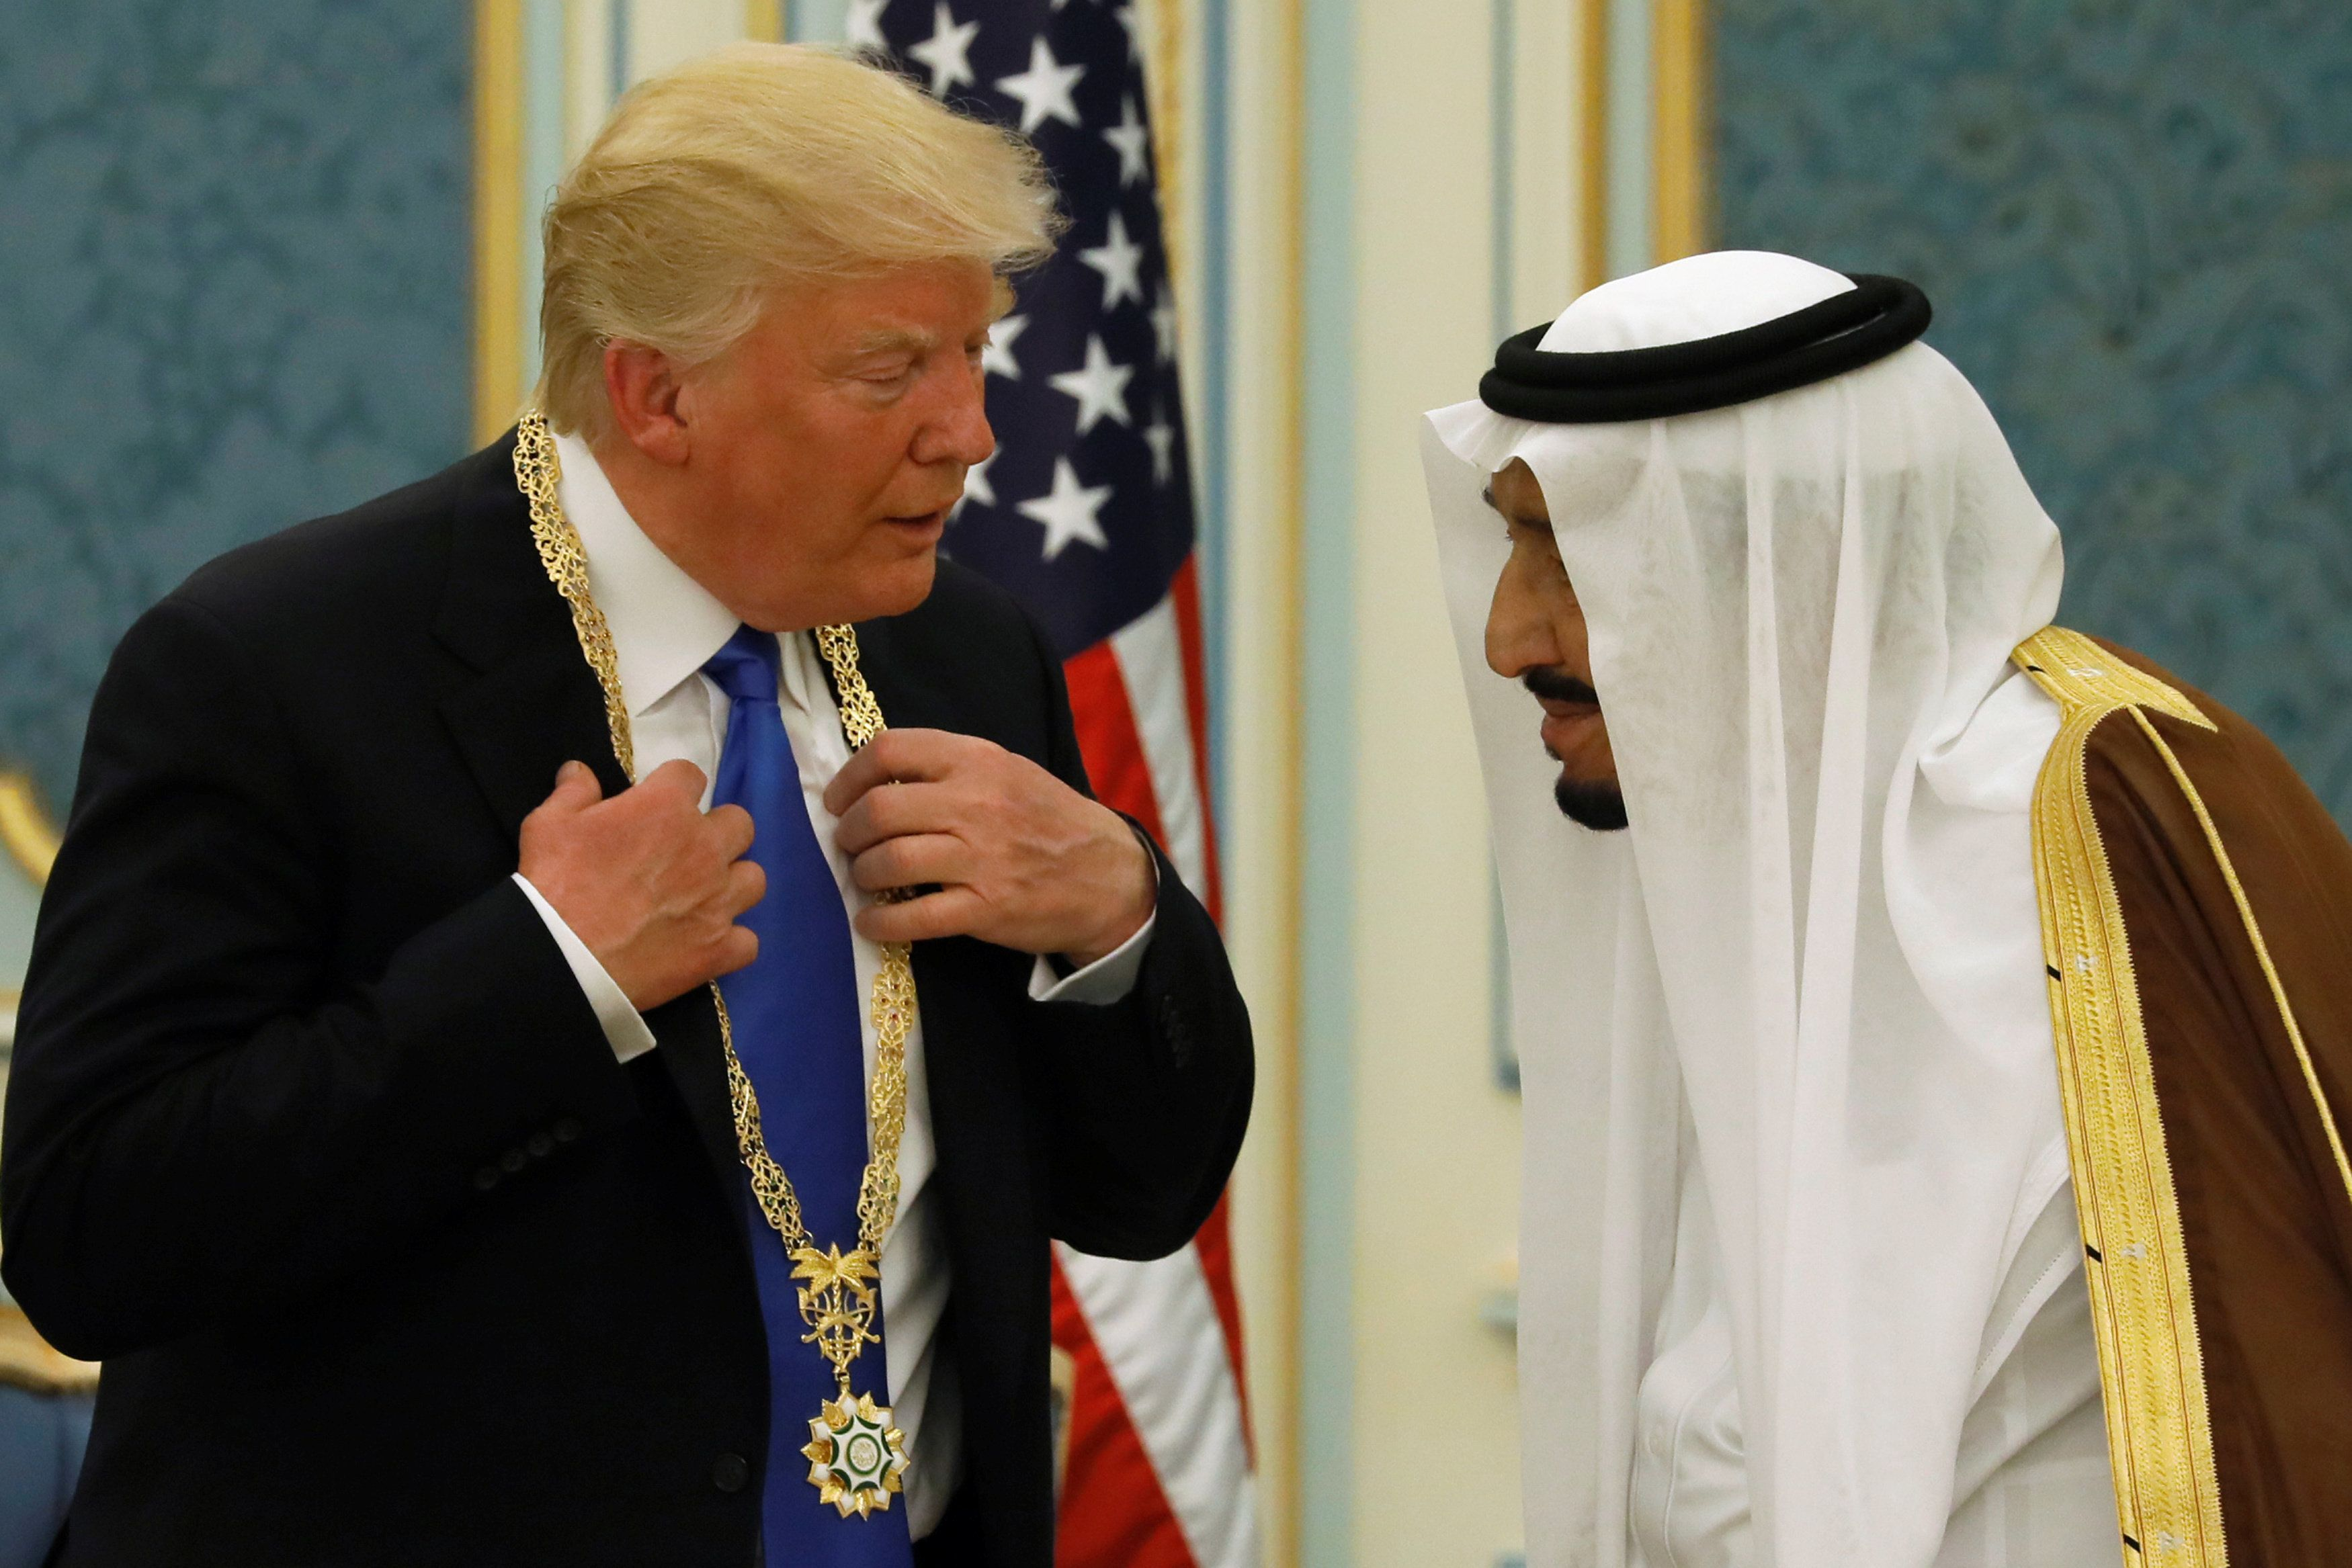 Saudi Arabia's King Salman bin Abdulaziz Al Saud (R) presents U.S. President Donald Trump with the Collar of Abdulaziz Al Saud Medal at the Royal Court in Riyadh, Saudi Arabia May 20, 2017. REUTERS/Jonathan Ernst